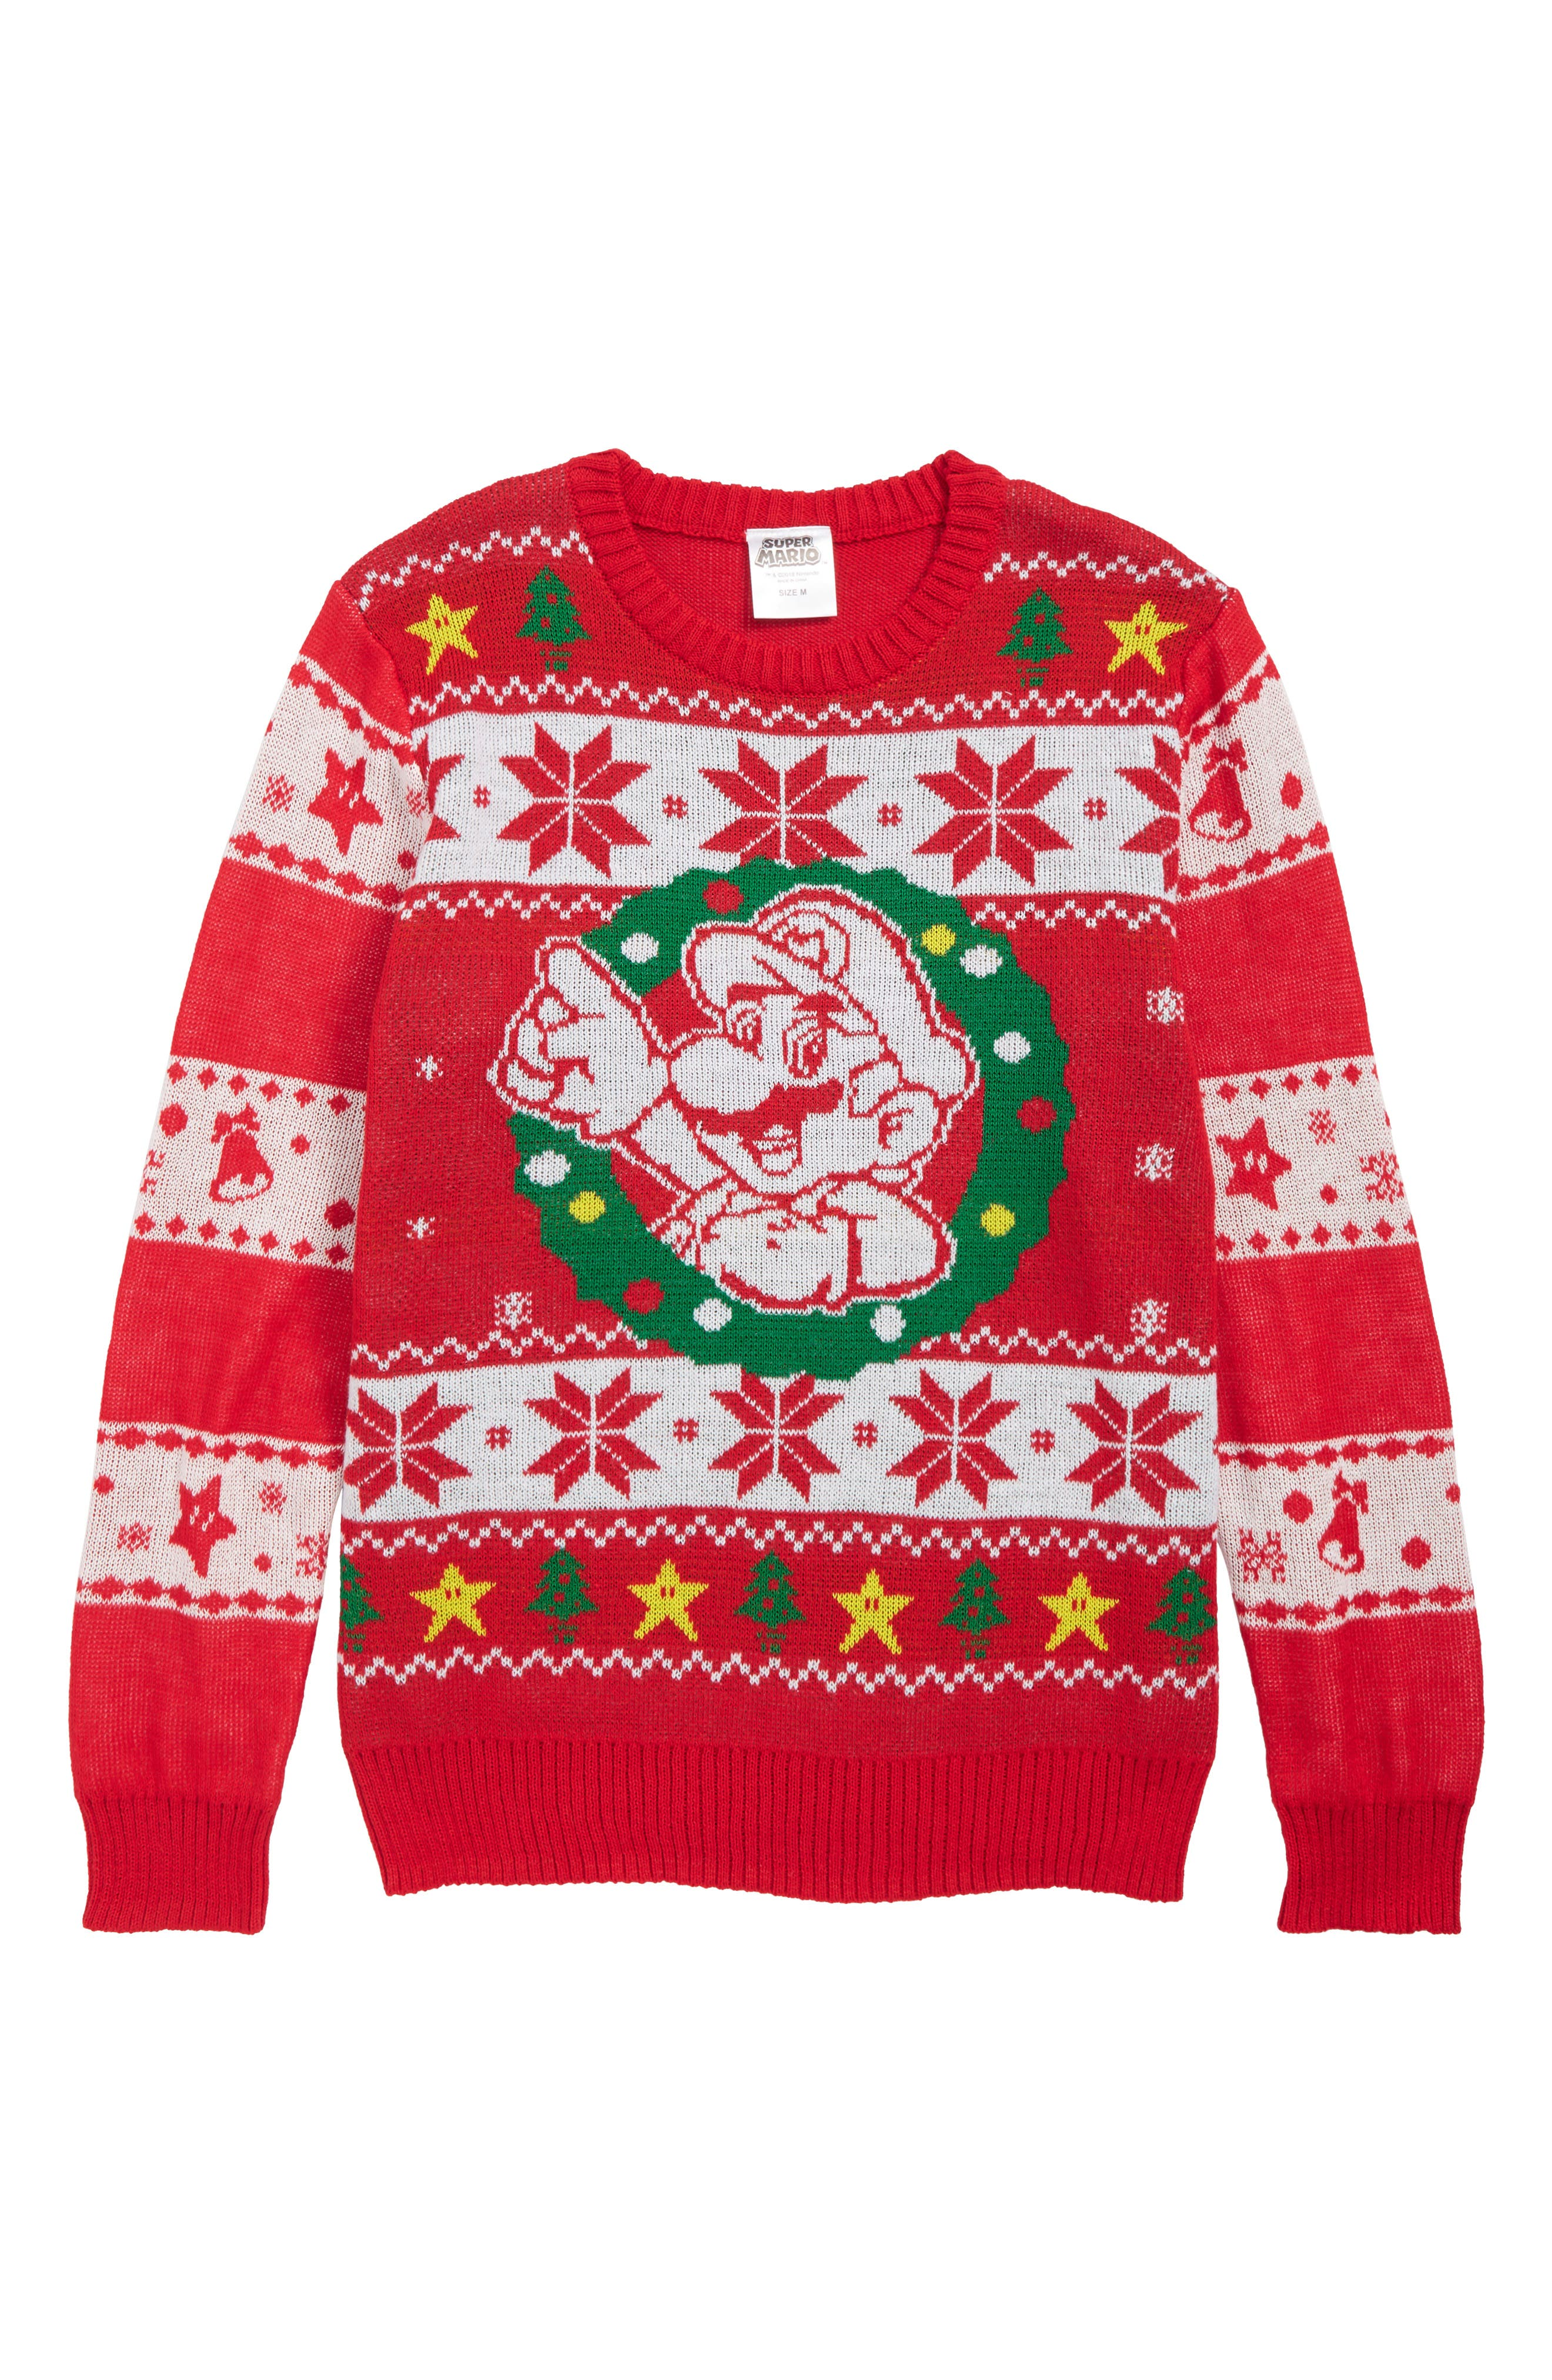 x Nintendo Super Mario<sup>™</sup> Holiday Sweater,                             Main thumbnail 1, color,                             RED